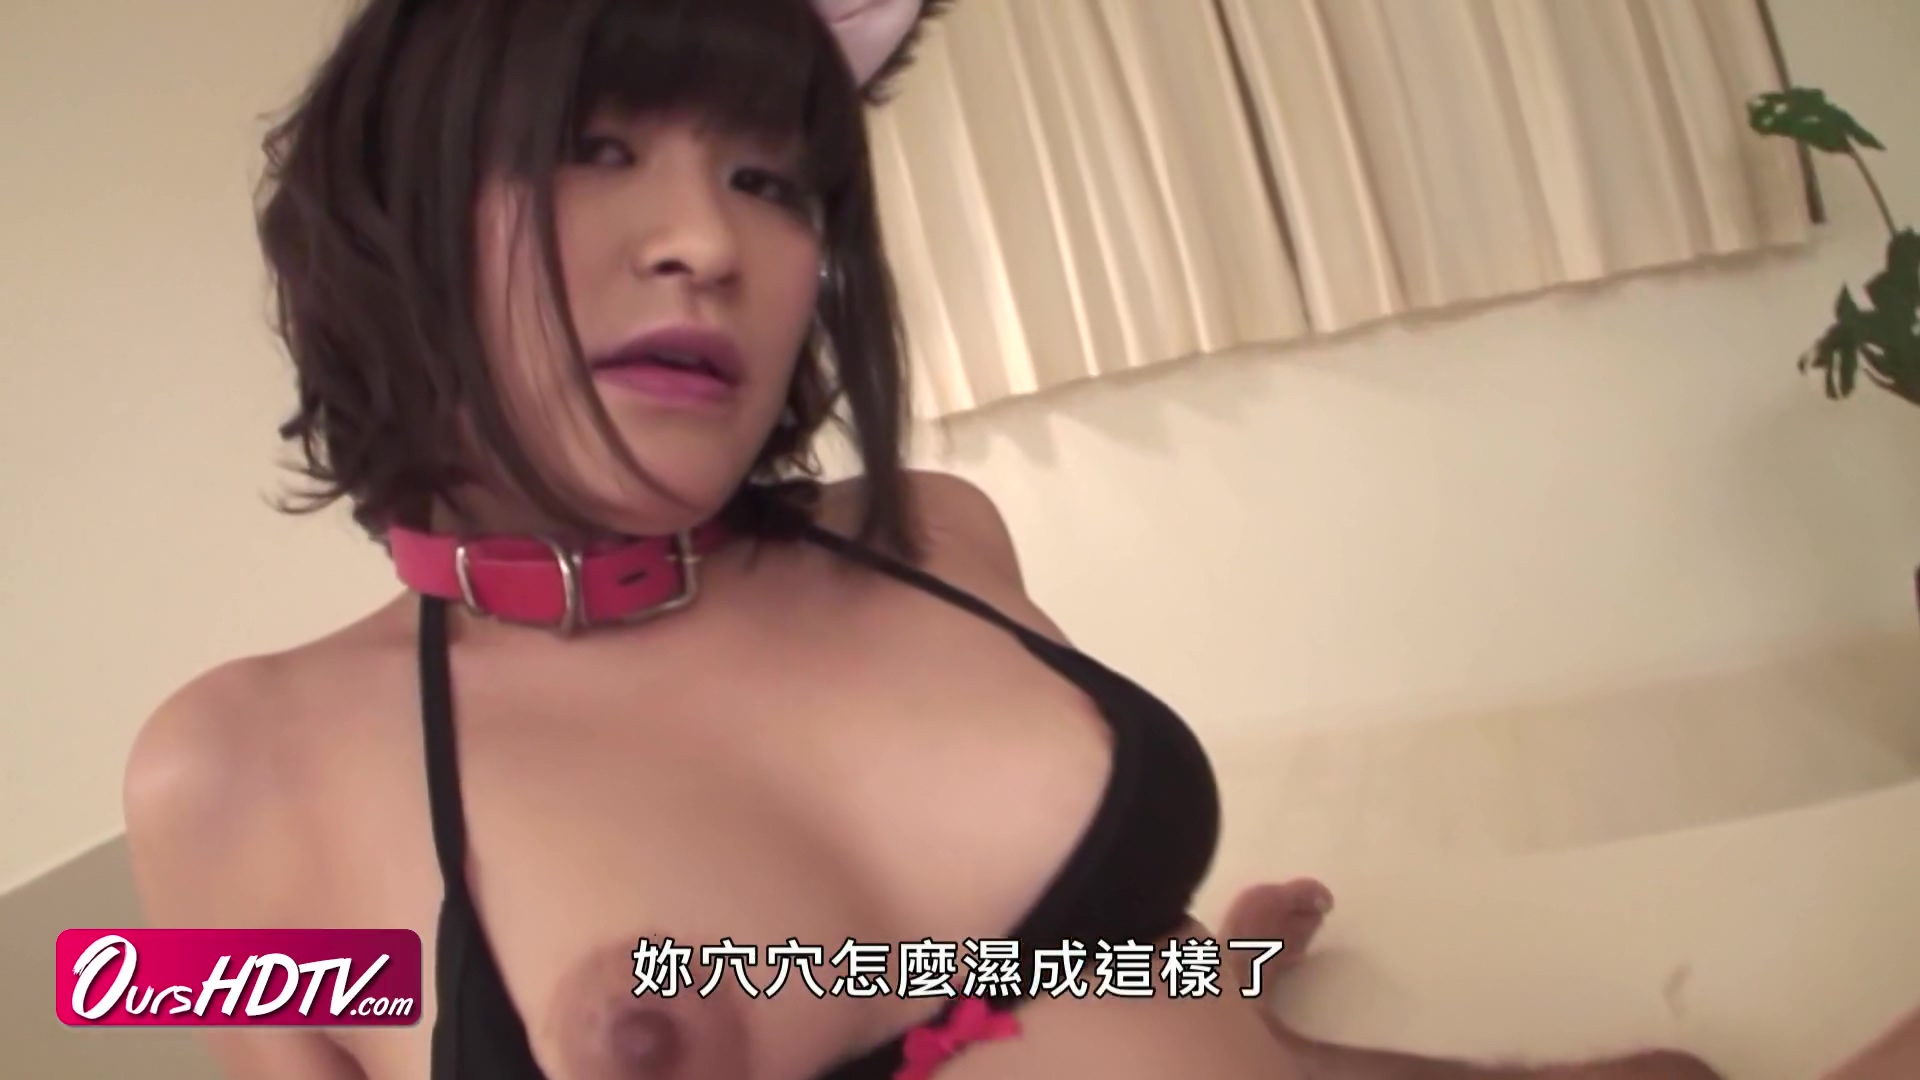 [ourshdtv][中文字幕]adorable Thic Pet Aika Hoshino Got Anal Creampie Uncensored